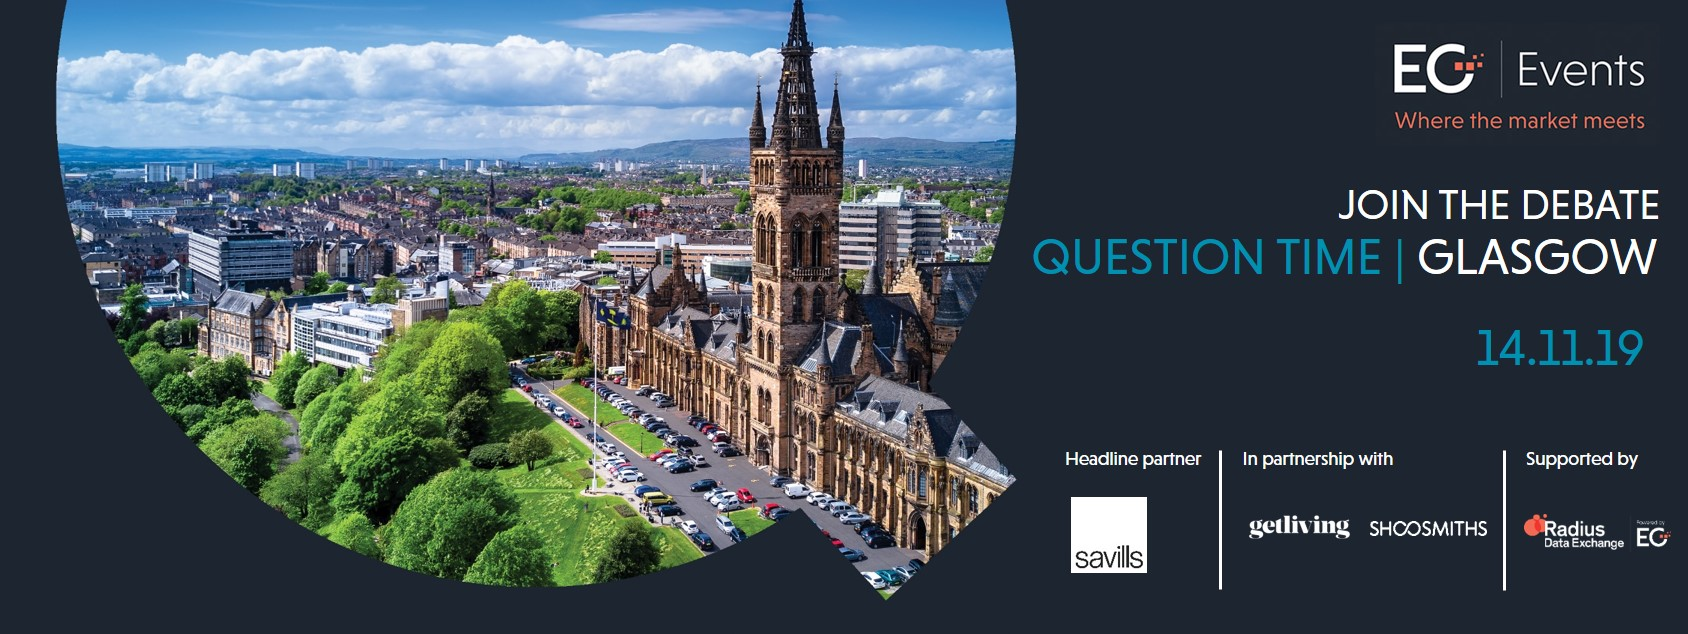 QUESTION TIME | GLASGOW